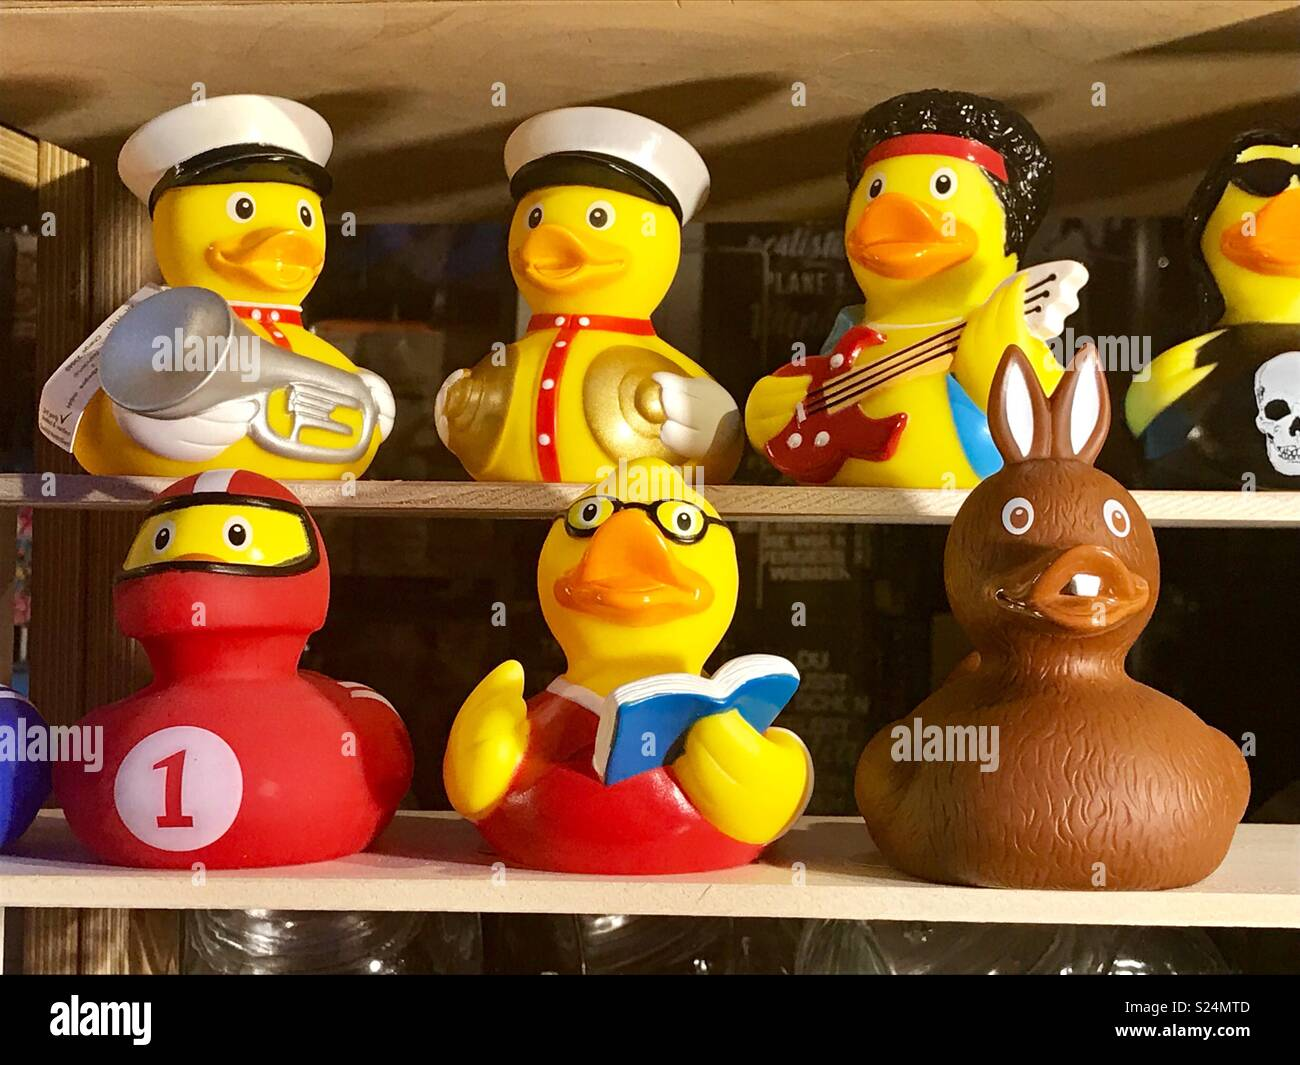 Rubber Ducks In Row Stock Photos & Rubber Ducks In Row Stock Images ...